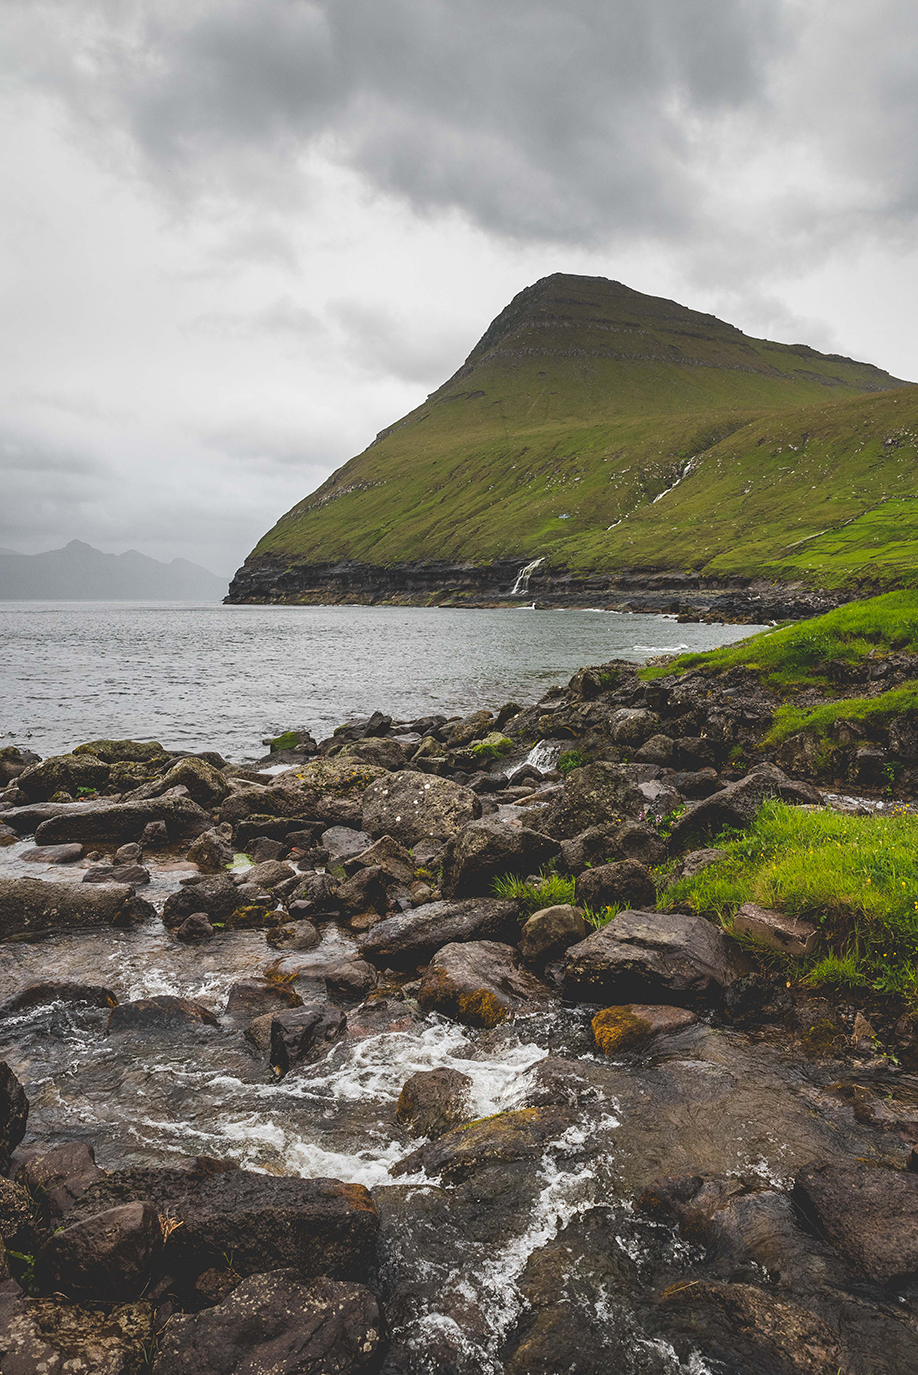 FaroeIslands_Day2_23-6-17_TAL-176.jpg